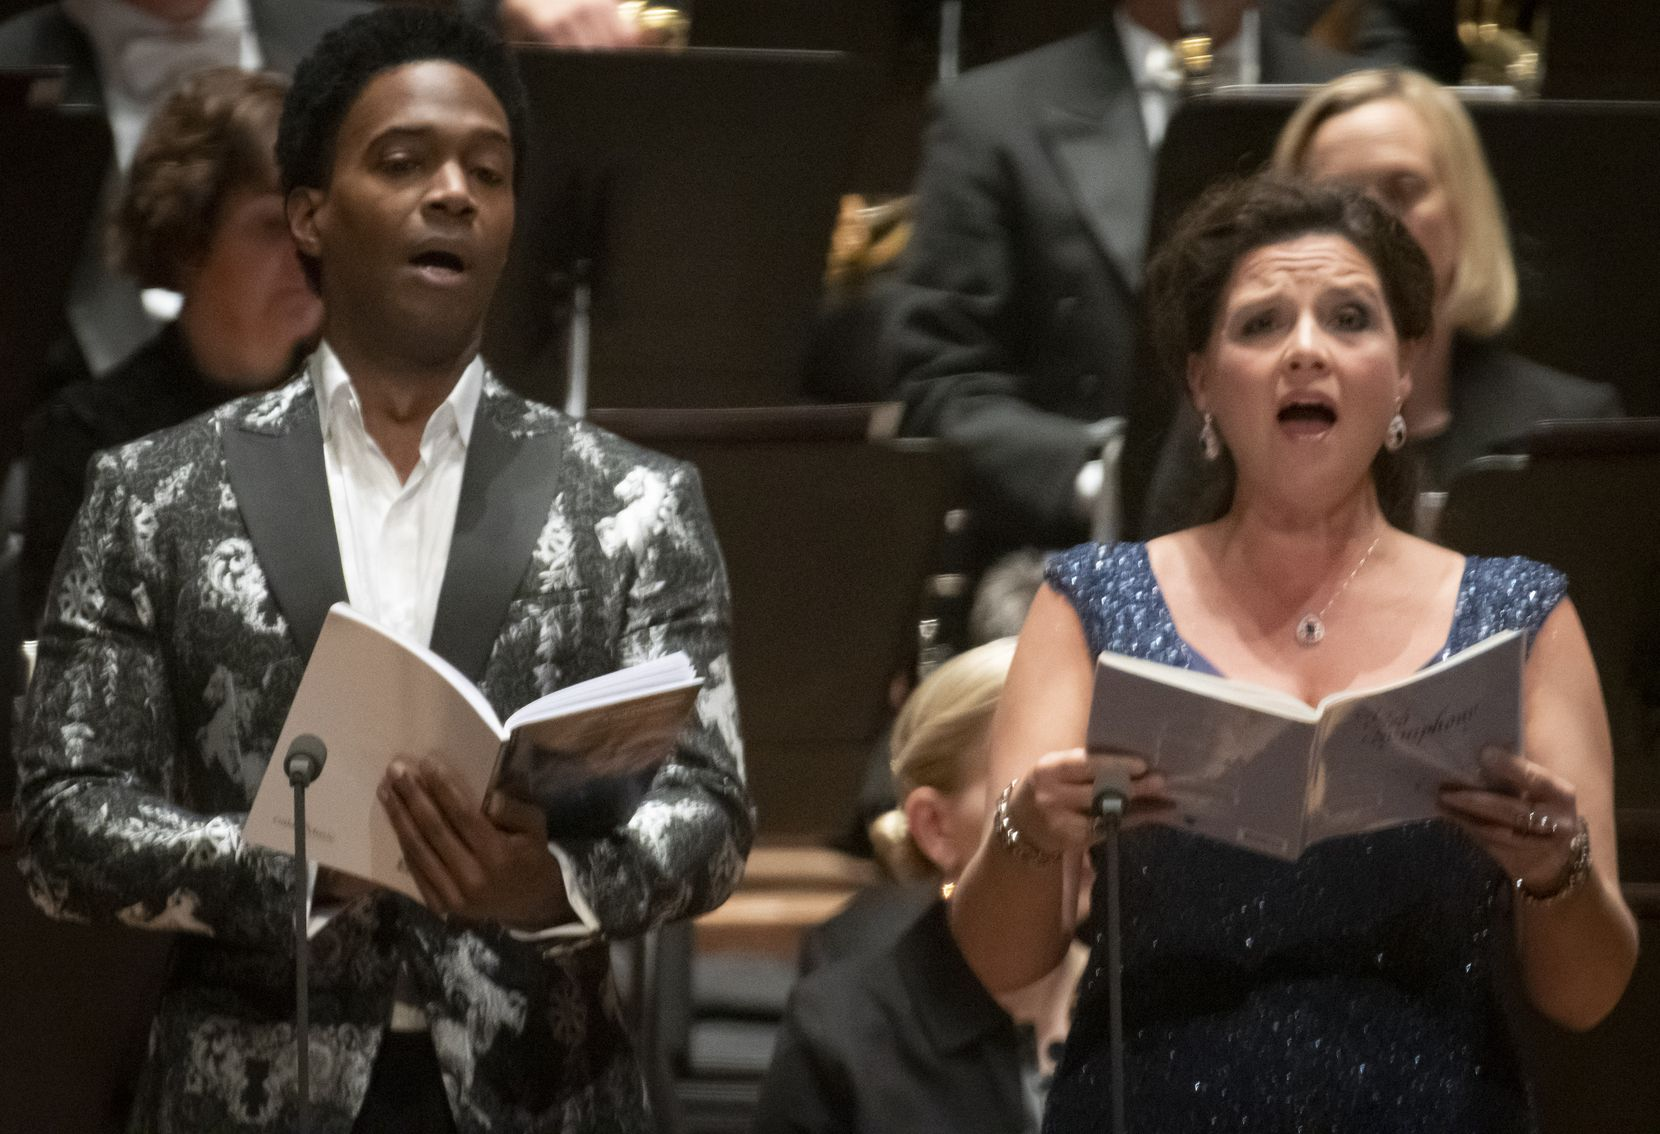 """Baritone Nmon Ford and soprano Sarah Fox perform Symphony No. 1, """"A Sea Symphony"""" by Ralph Vaughan Williams with guest conductor Robert Spano, the Dallas Symphony Orchestra and Chorus at the Meyerson Symphony Center in Dallas, Texas on October 25, 2019."""